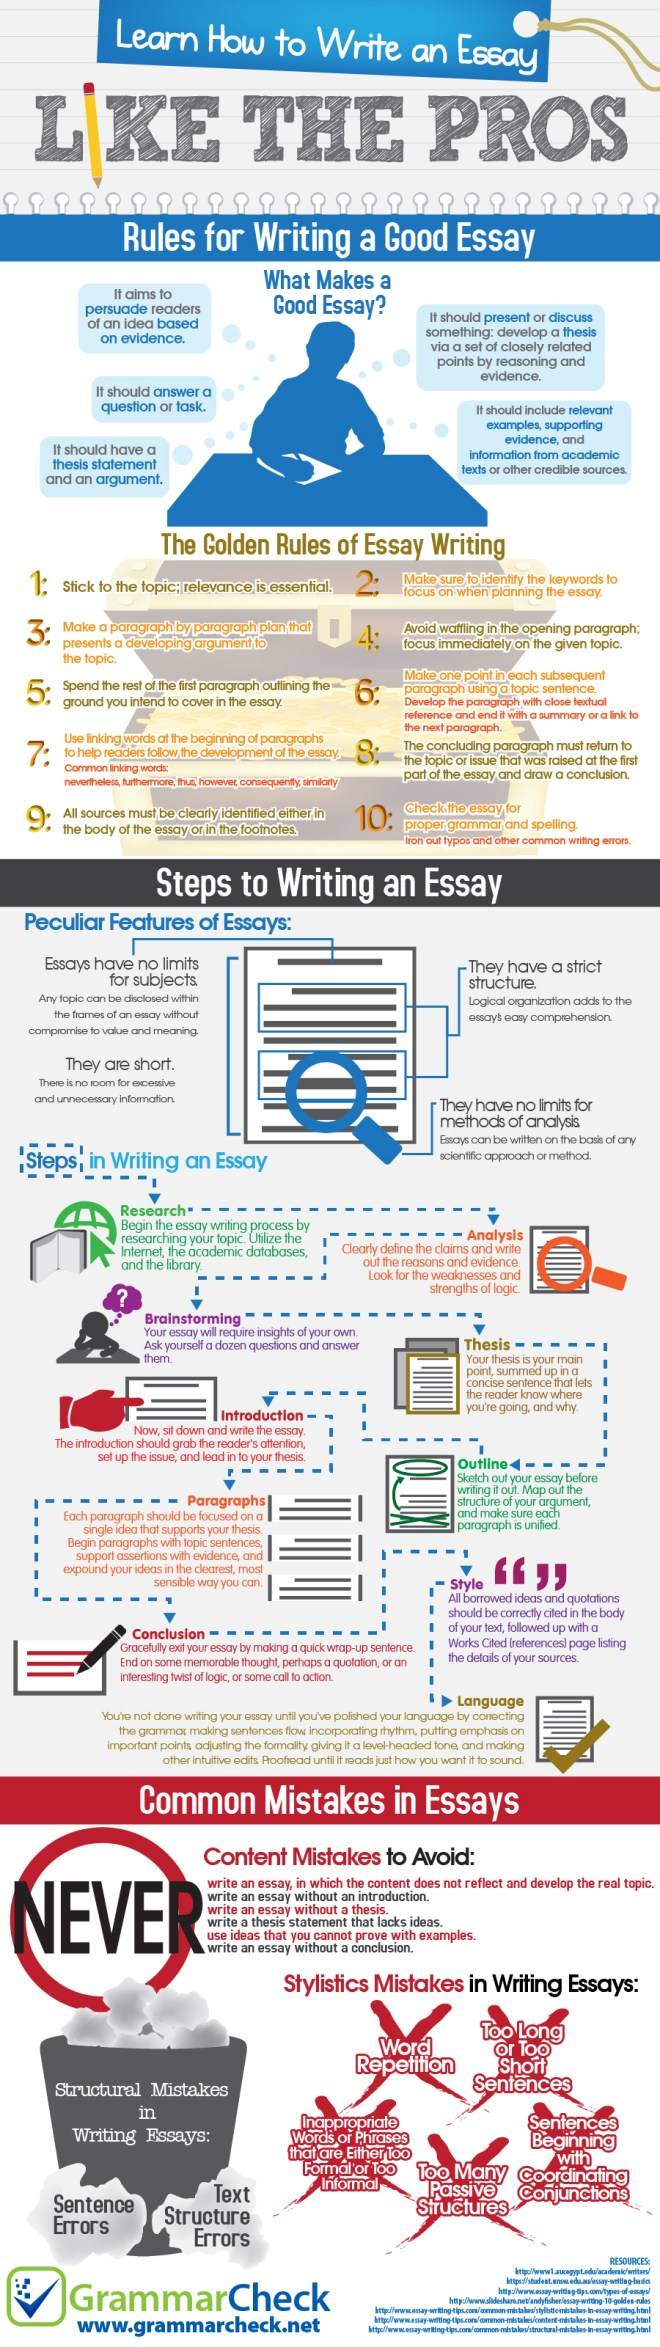 how to write an essay in upsc capf assistant commandant exam tips how to write an essay in upsc capf assistant commandant exam sbi po upsc